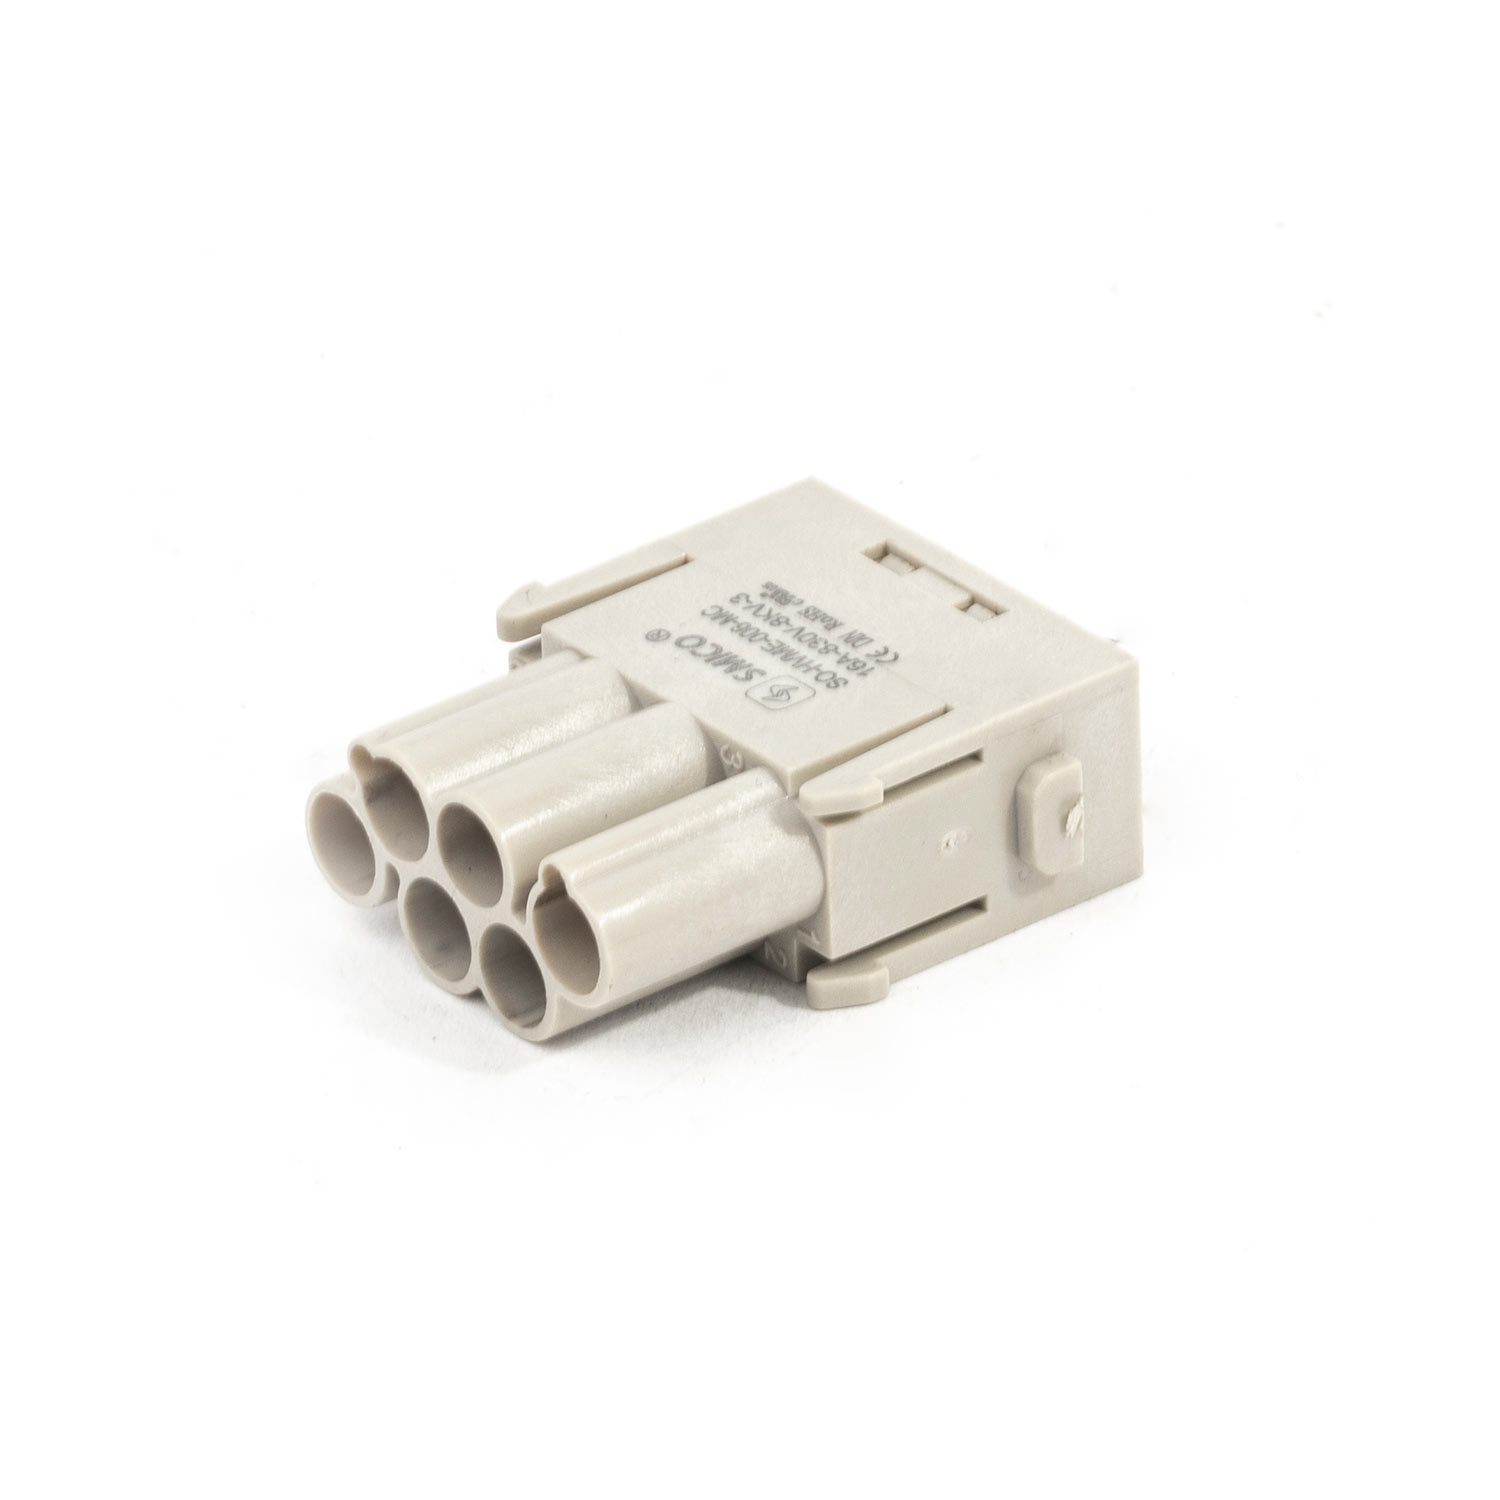 16A Modules Heavy Duty Connector with UL Certificate